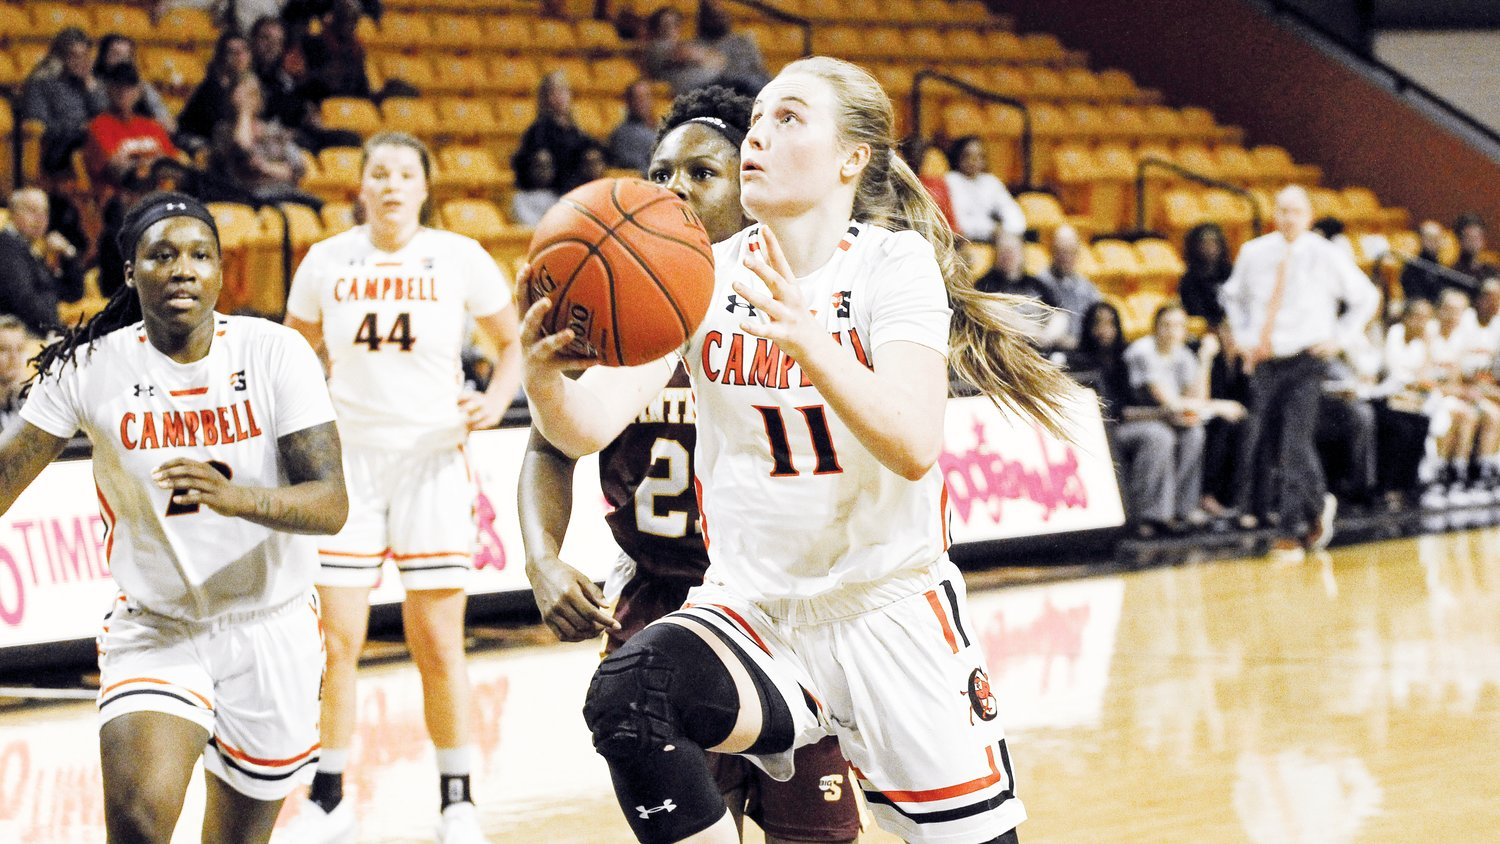 Campbell's Shy Tuelle drives to the basket in Tuesday's 63-47 win over Winthrop.